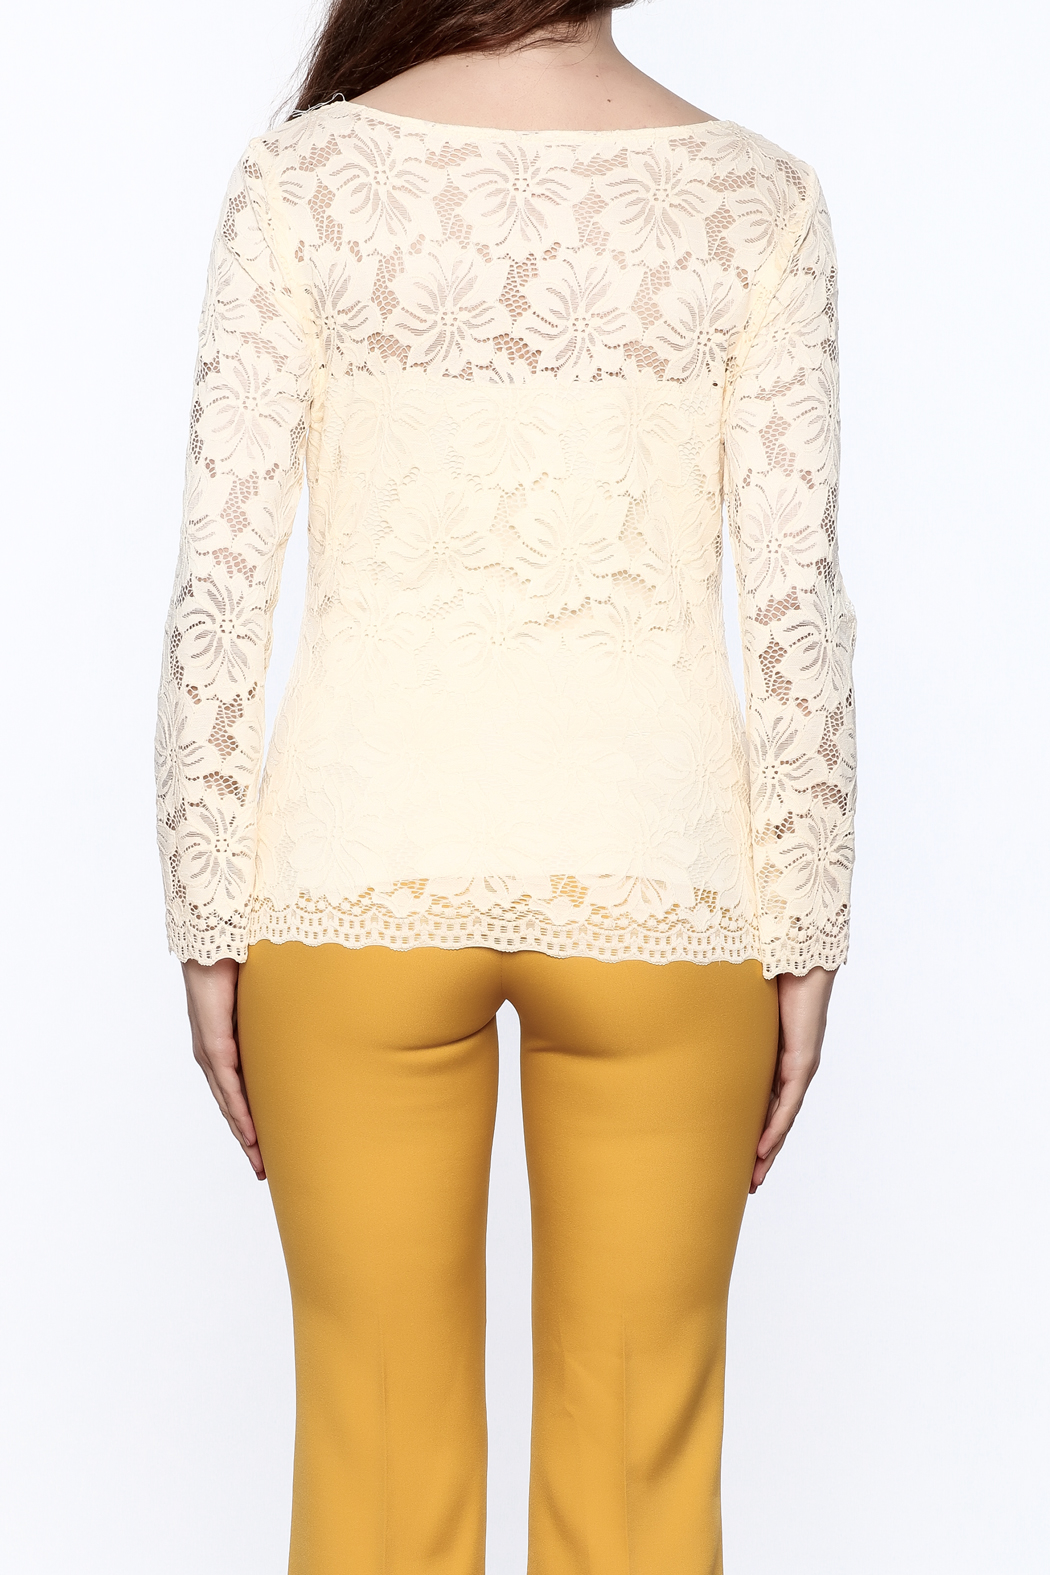 Sharon Max Ivory Lace Top - Back Cropped Image